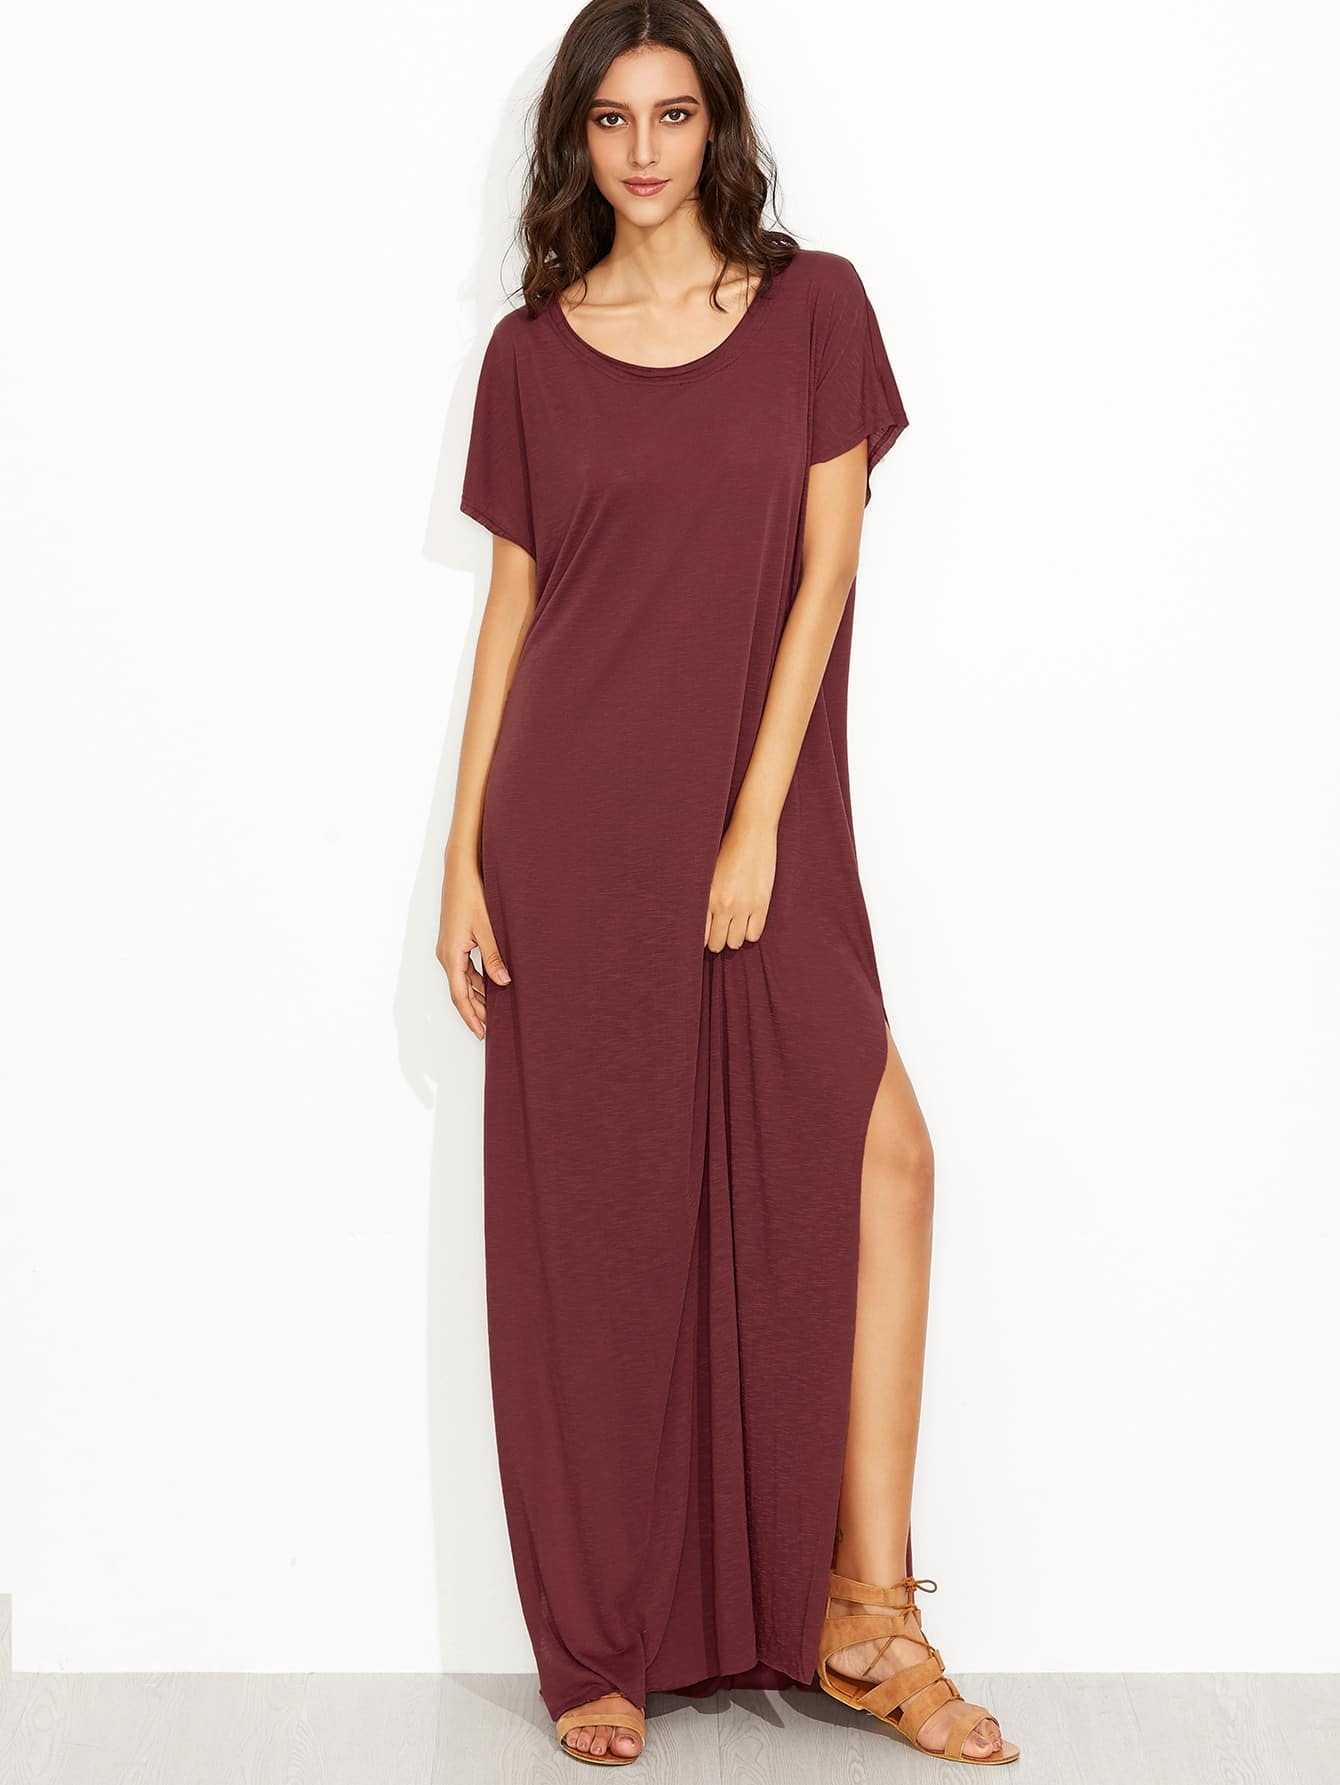 t shirt maxi dress uk apple